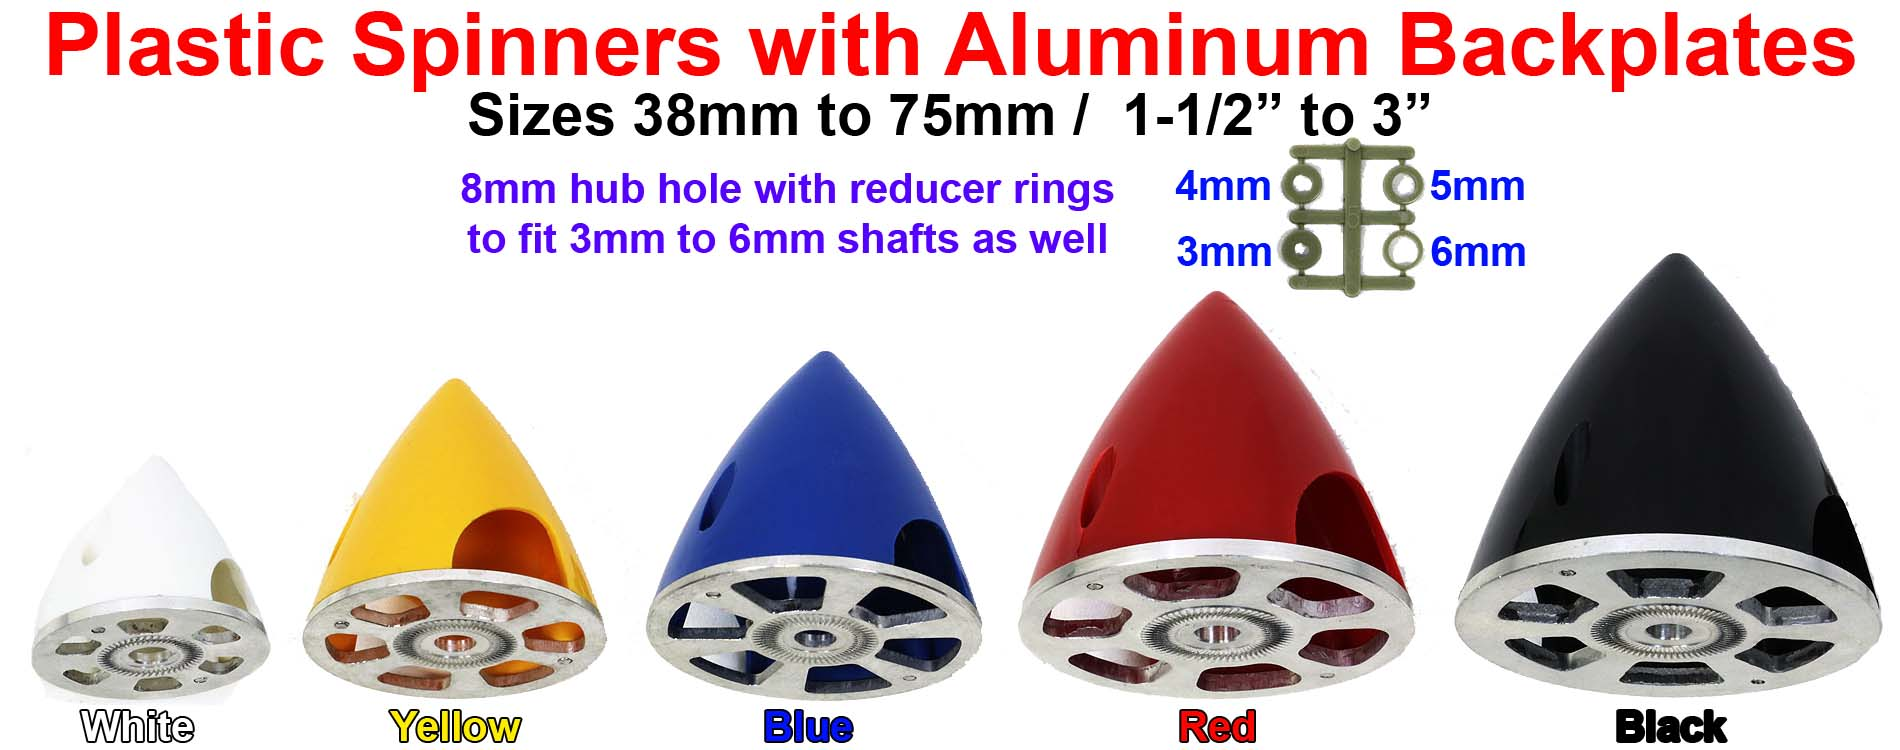 Plastic Spinners